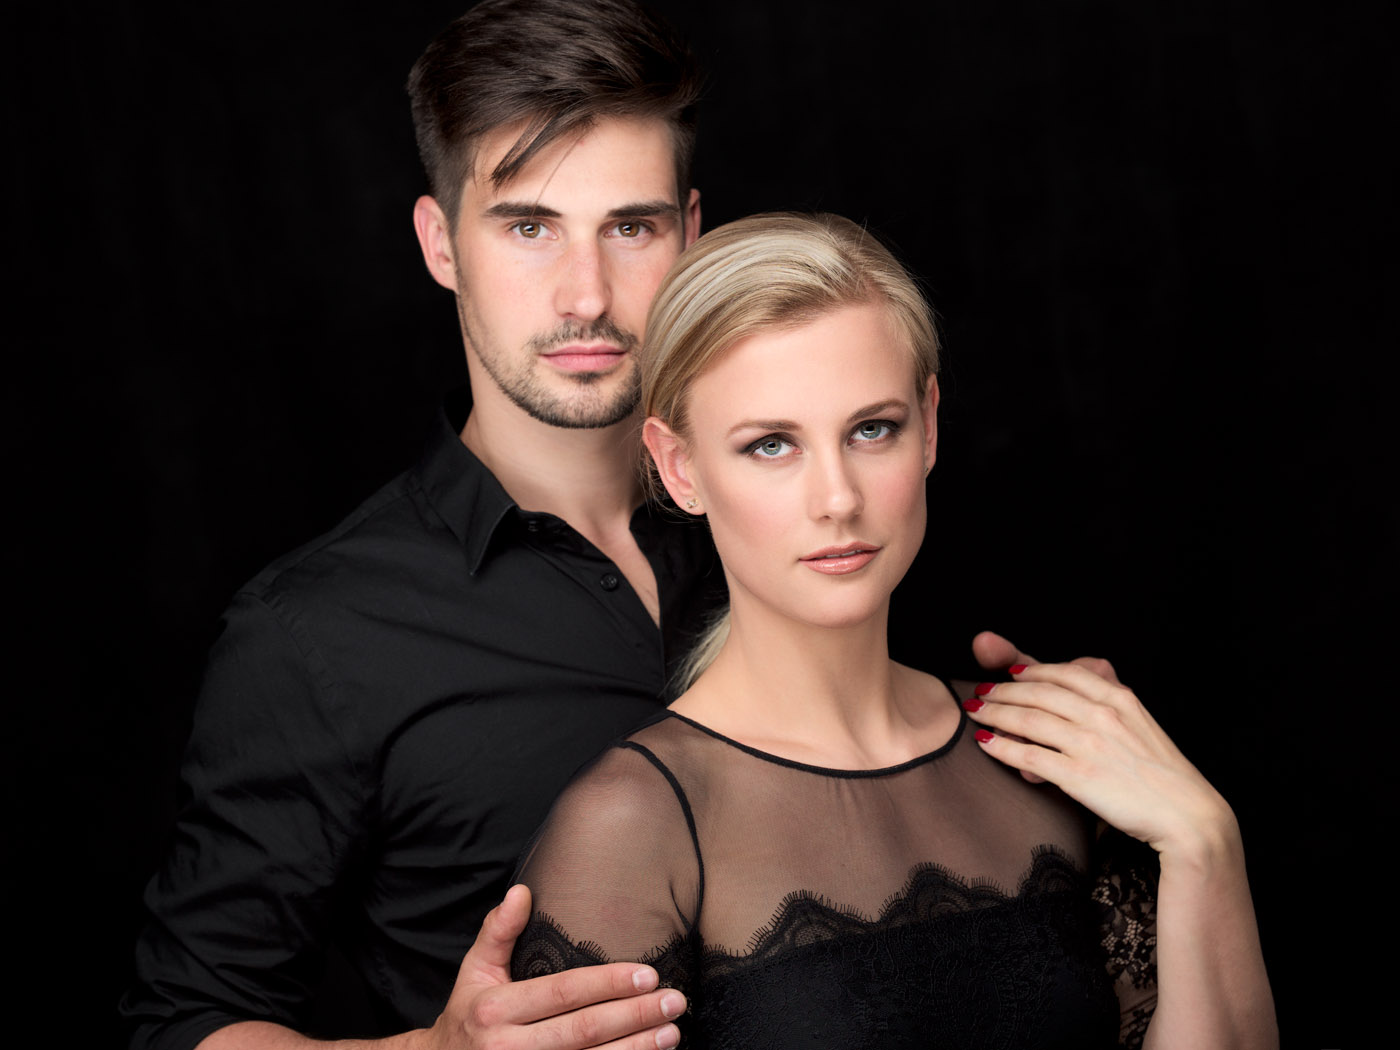 Montreal studio portrait photographer for couples